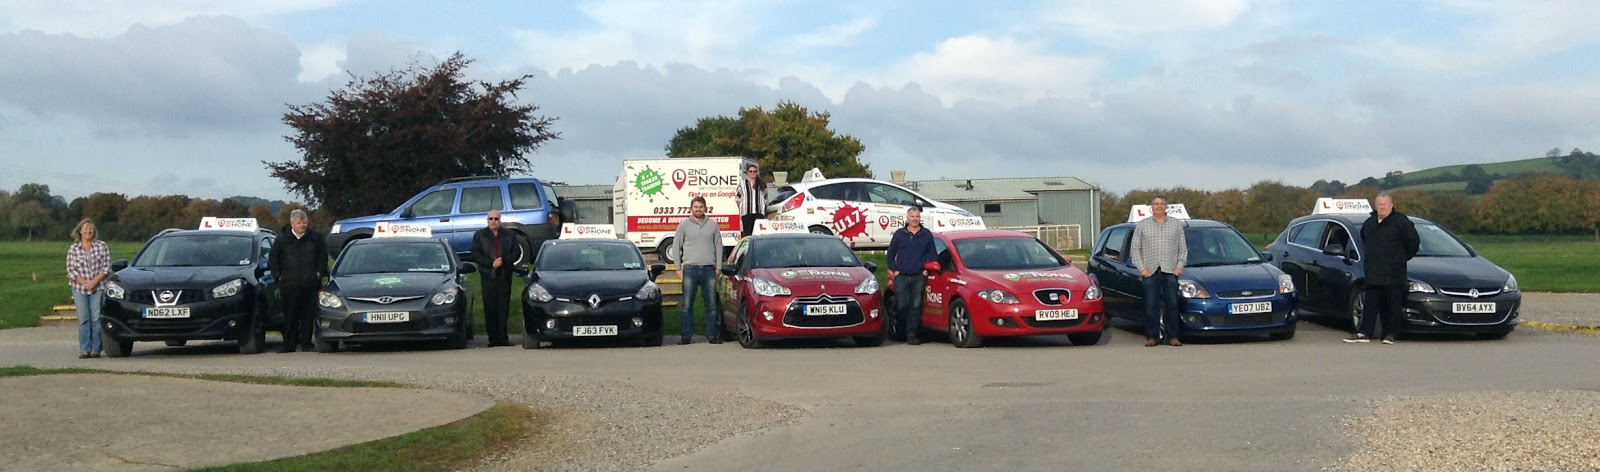 Under 17's Driving Fun at   The Royal Bath & West Showground